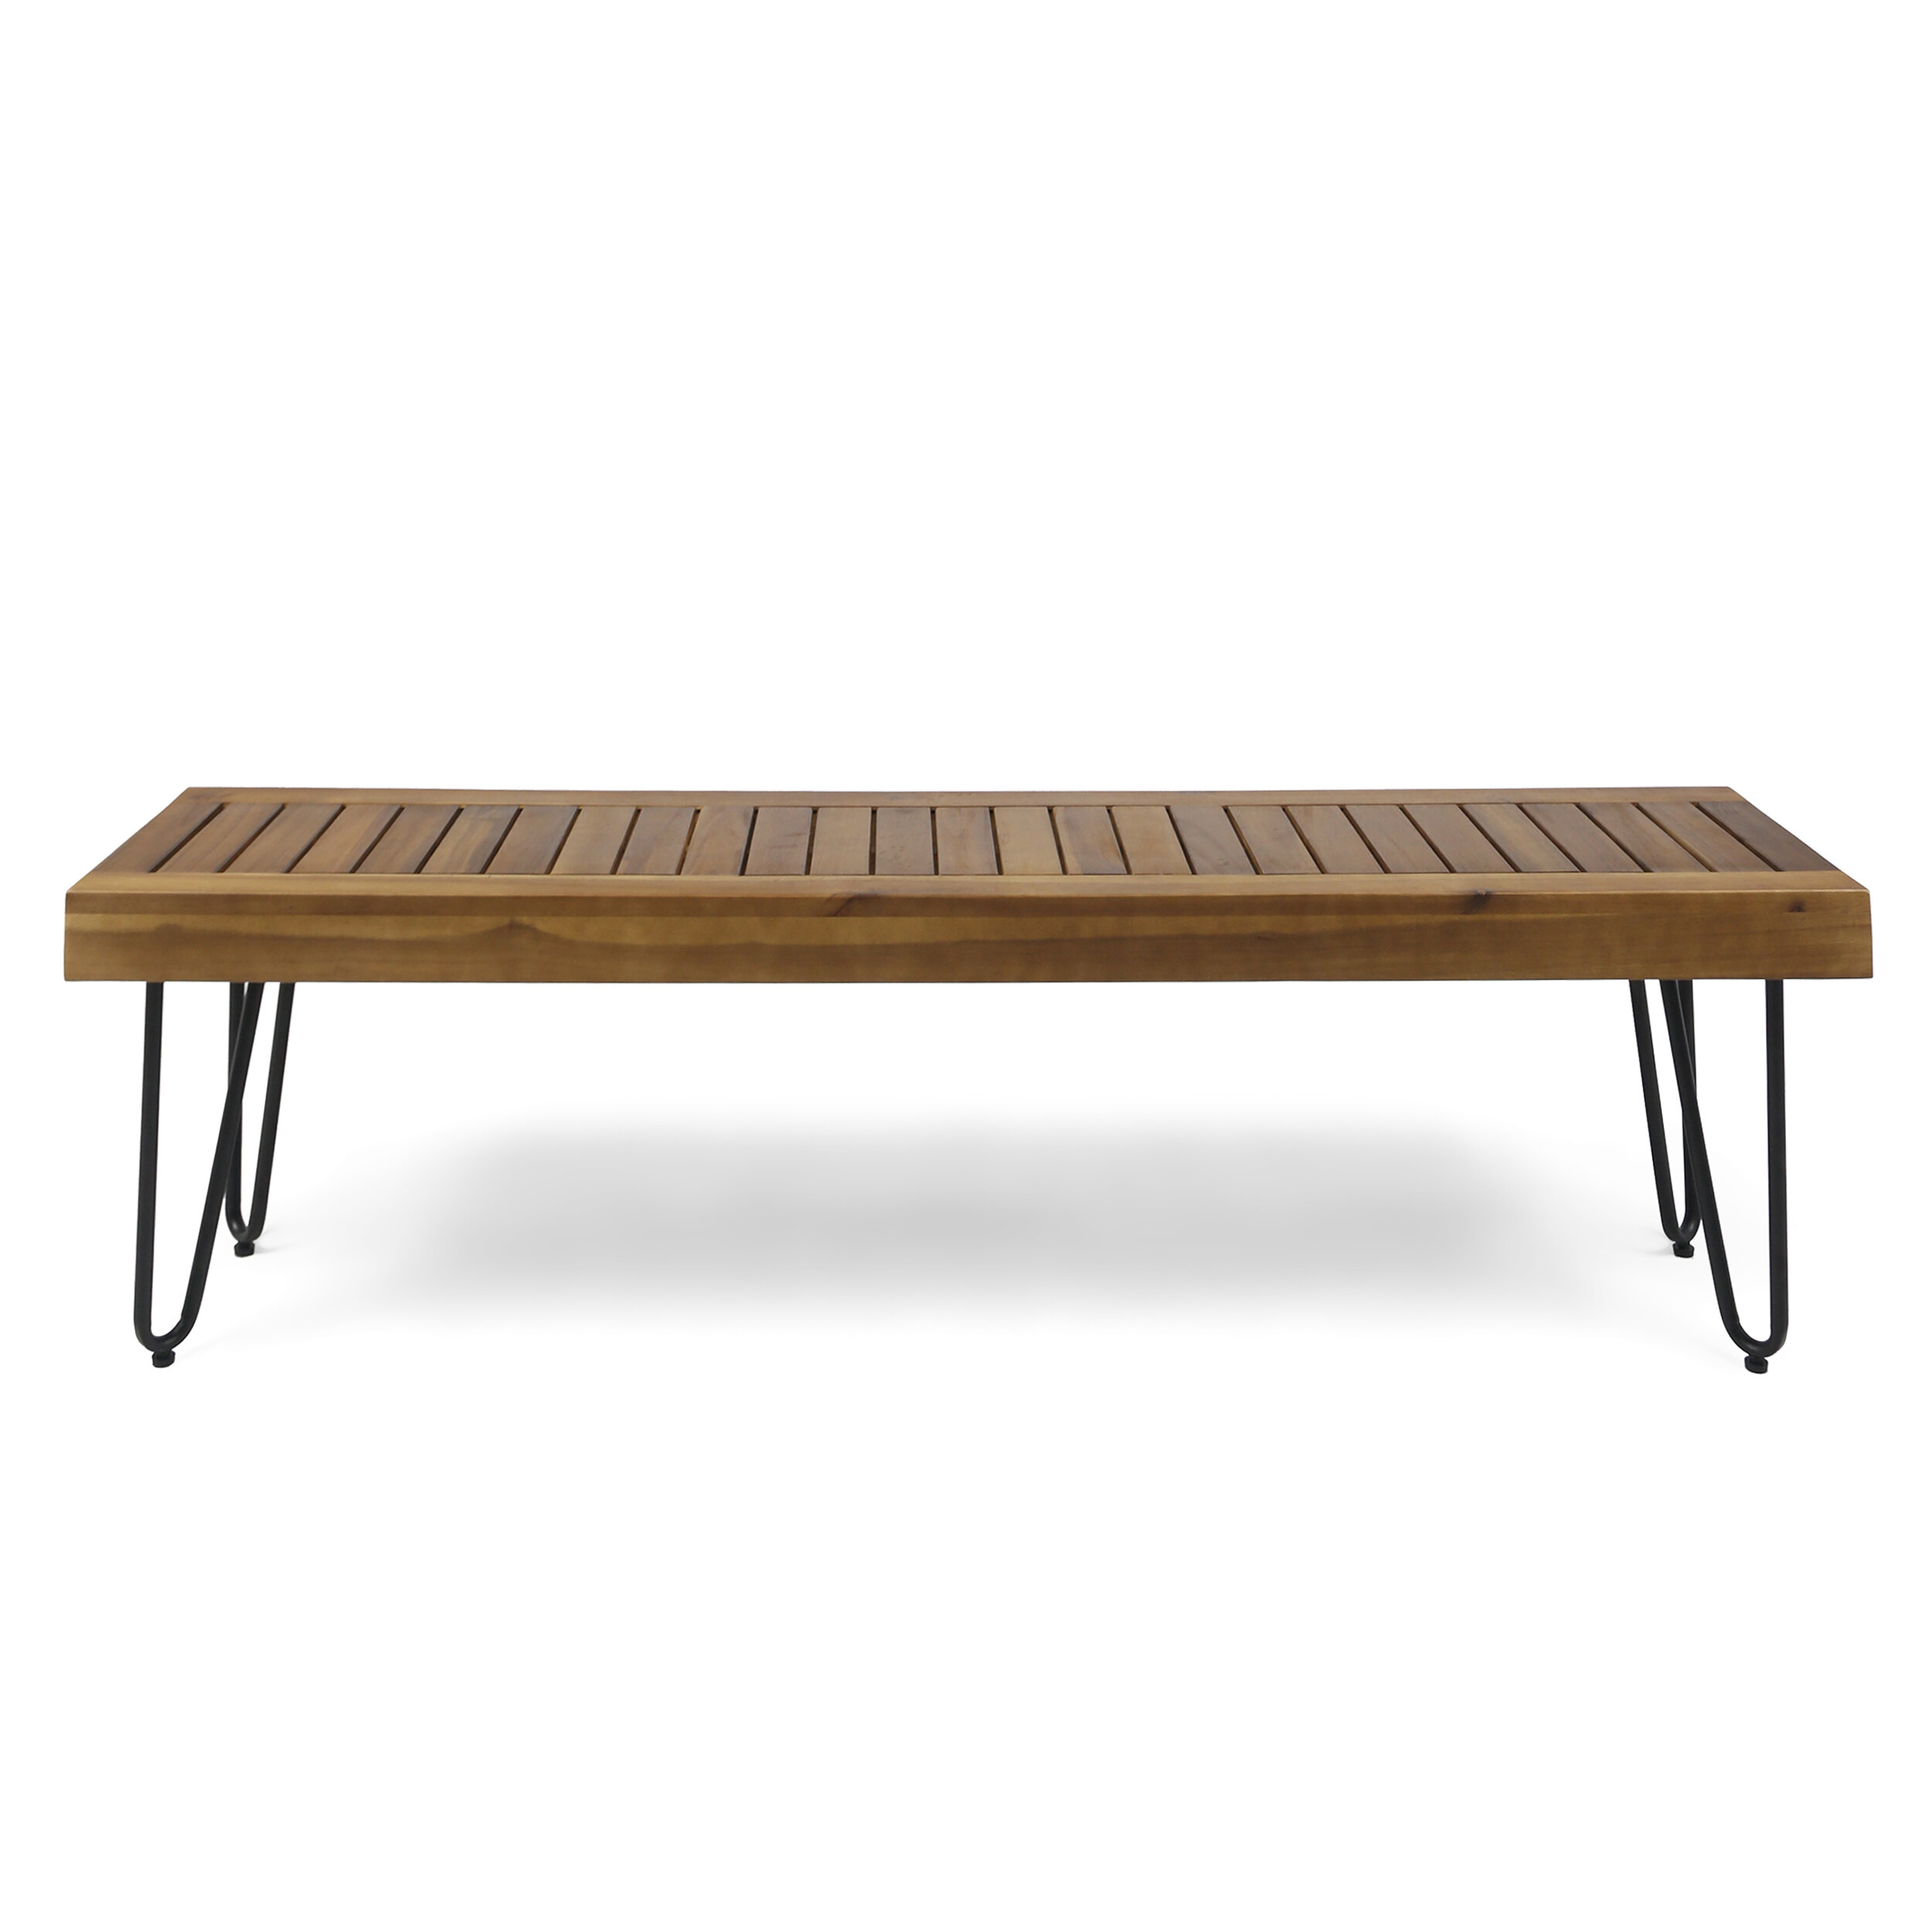 Outdoor Wooden Picnic Bench With Maliyah Wooden Garden Benches (View 18 of 25)